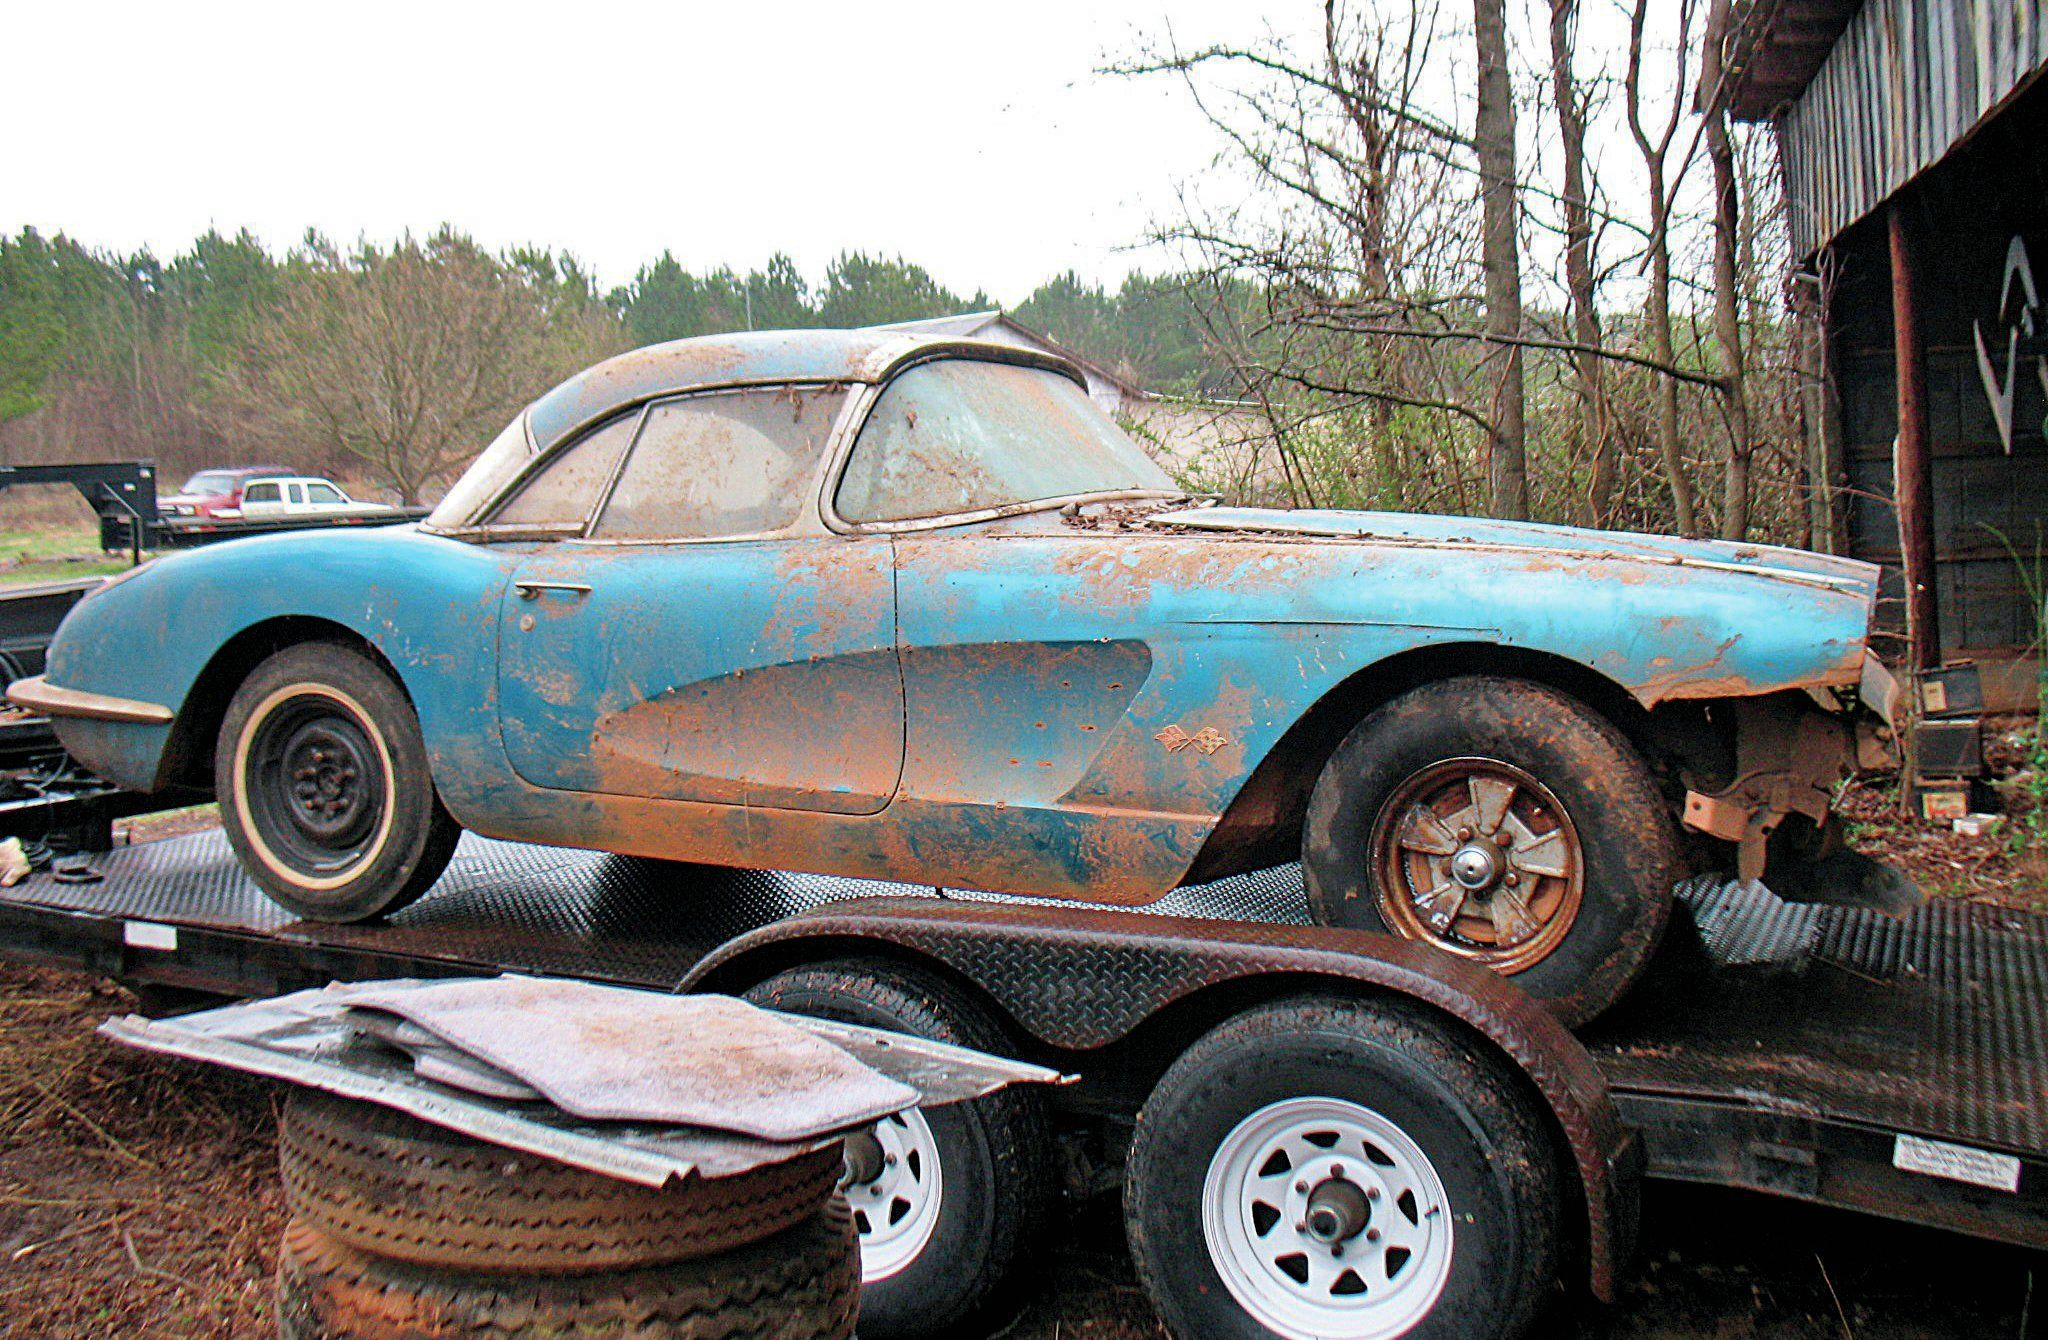 Barn Find 1959 Factory Fuelie Corvette Comes Out of Hiding After 44 ...